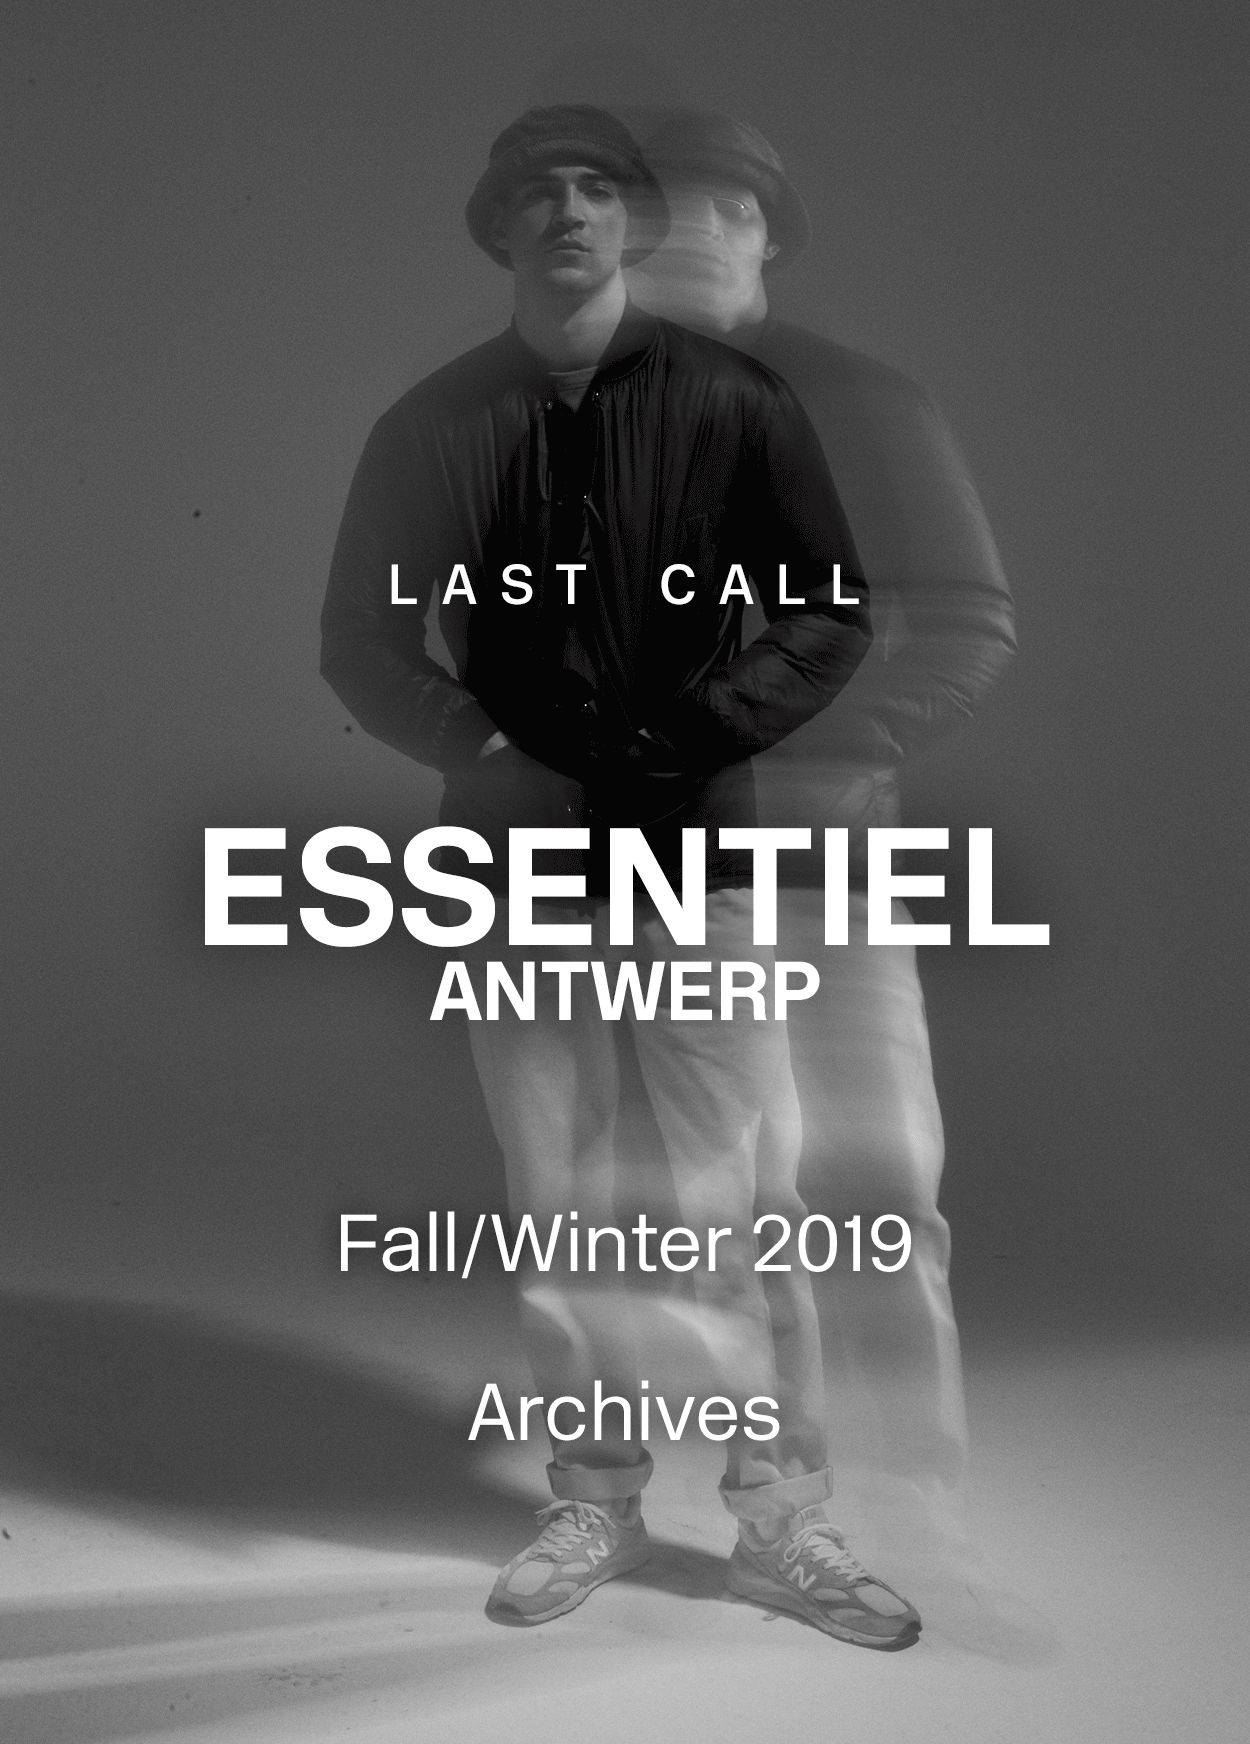 Last call to enjoy our Fall/Winter 2019 Archives at 50% off.